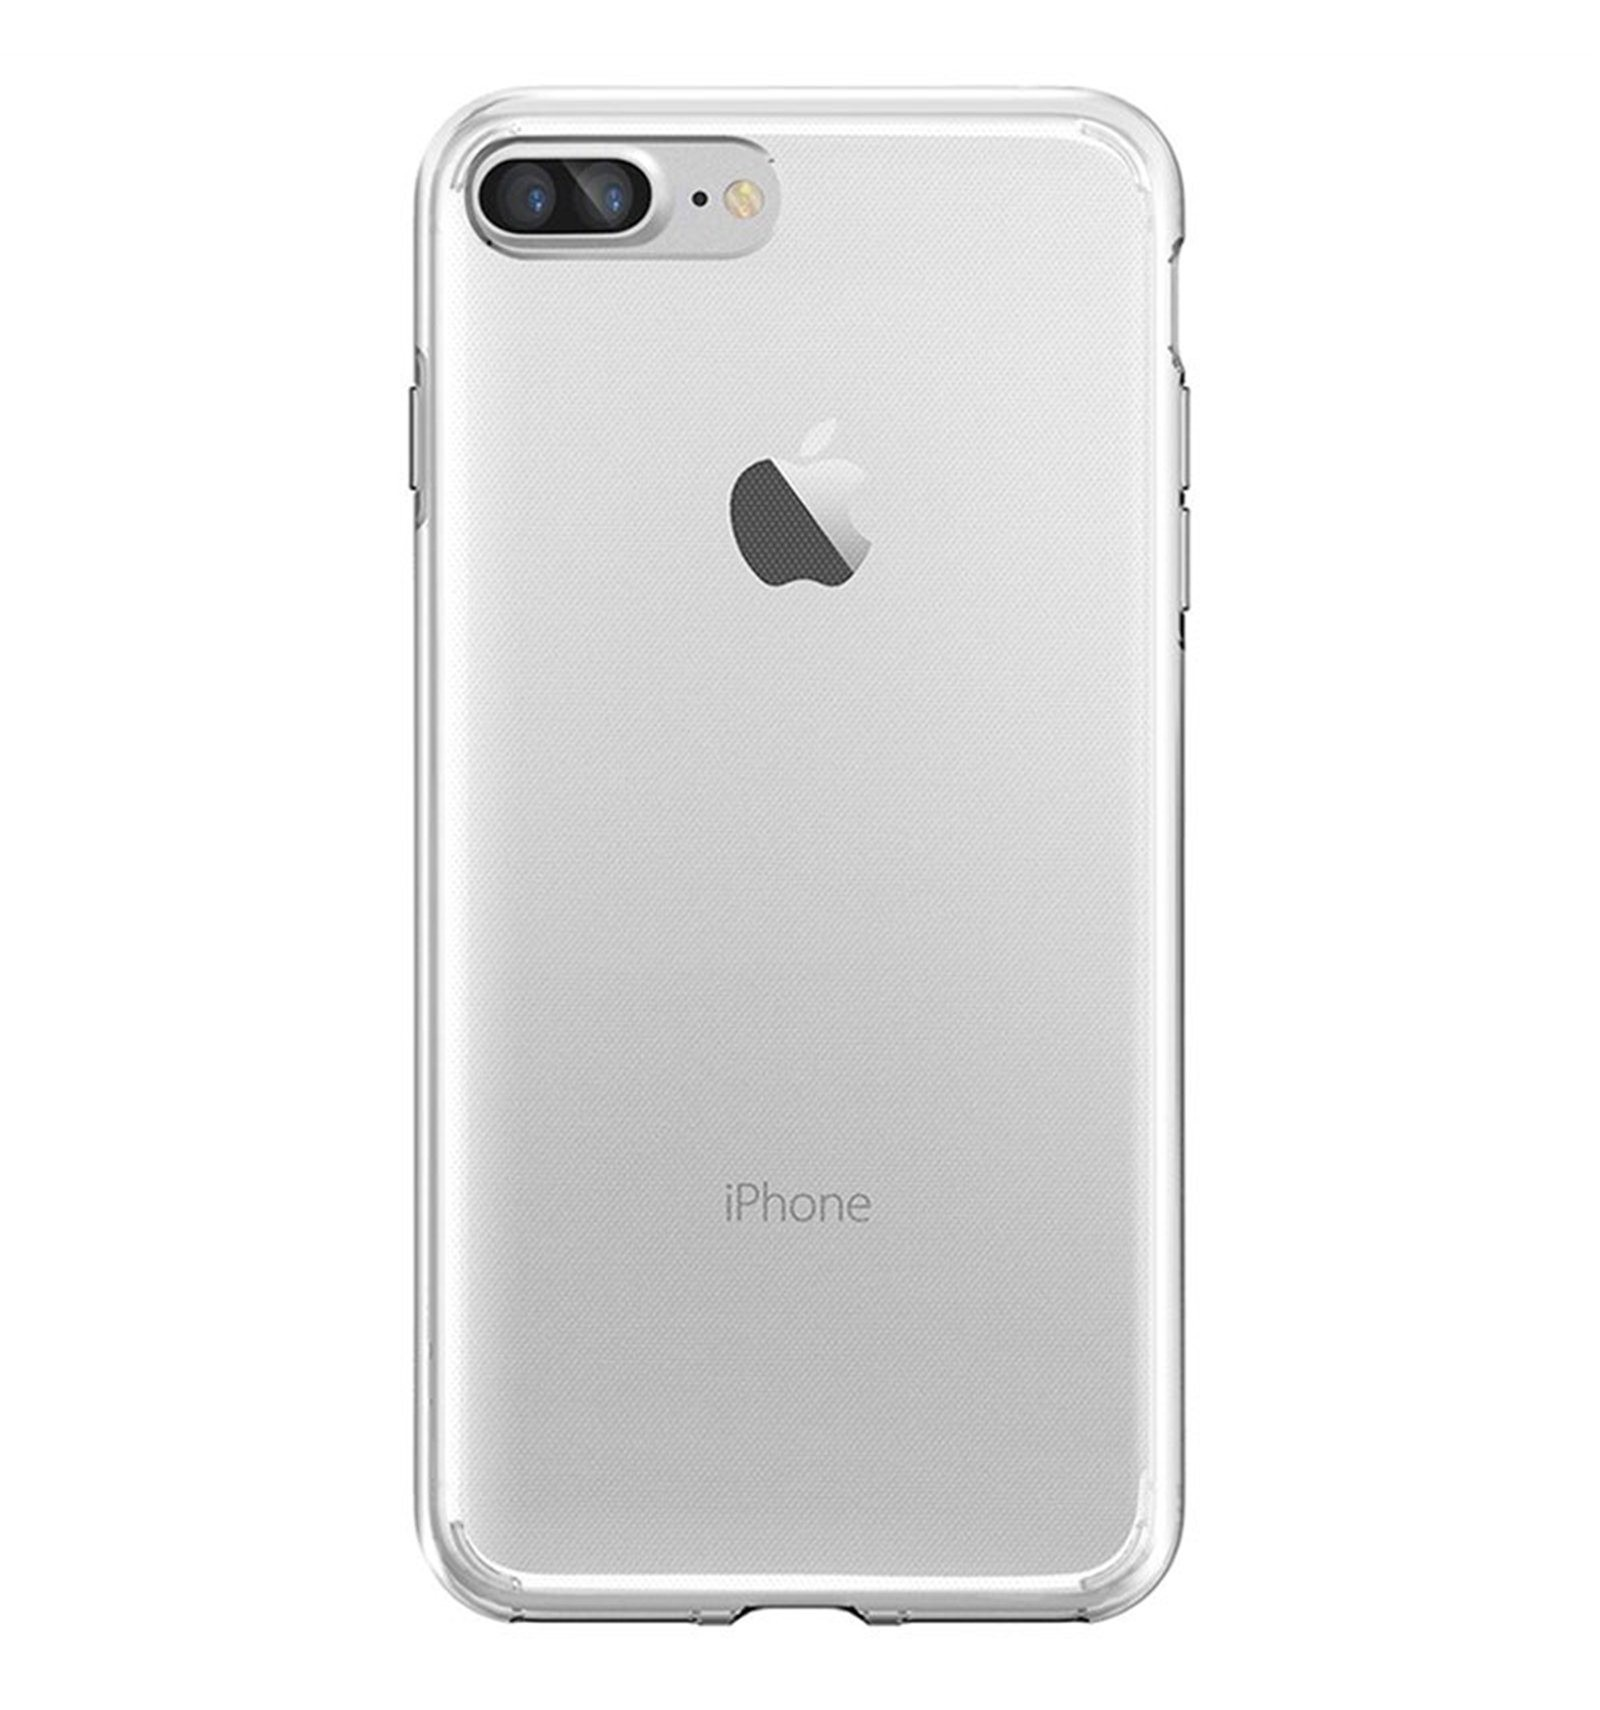 iPhone 7 Plus Funda Silicona Transparente